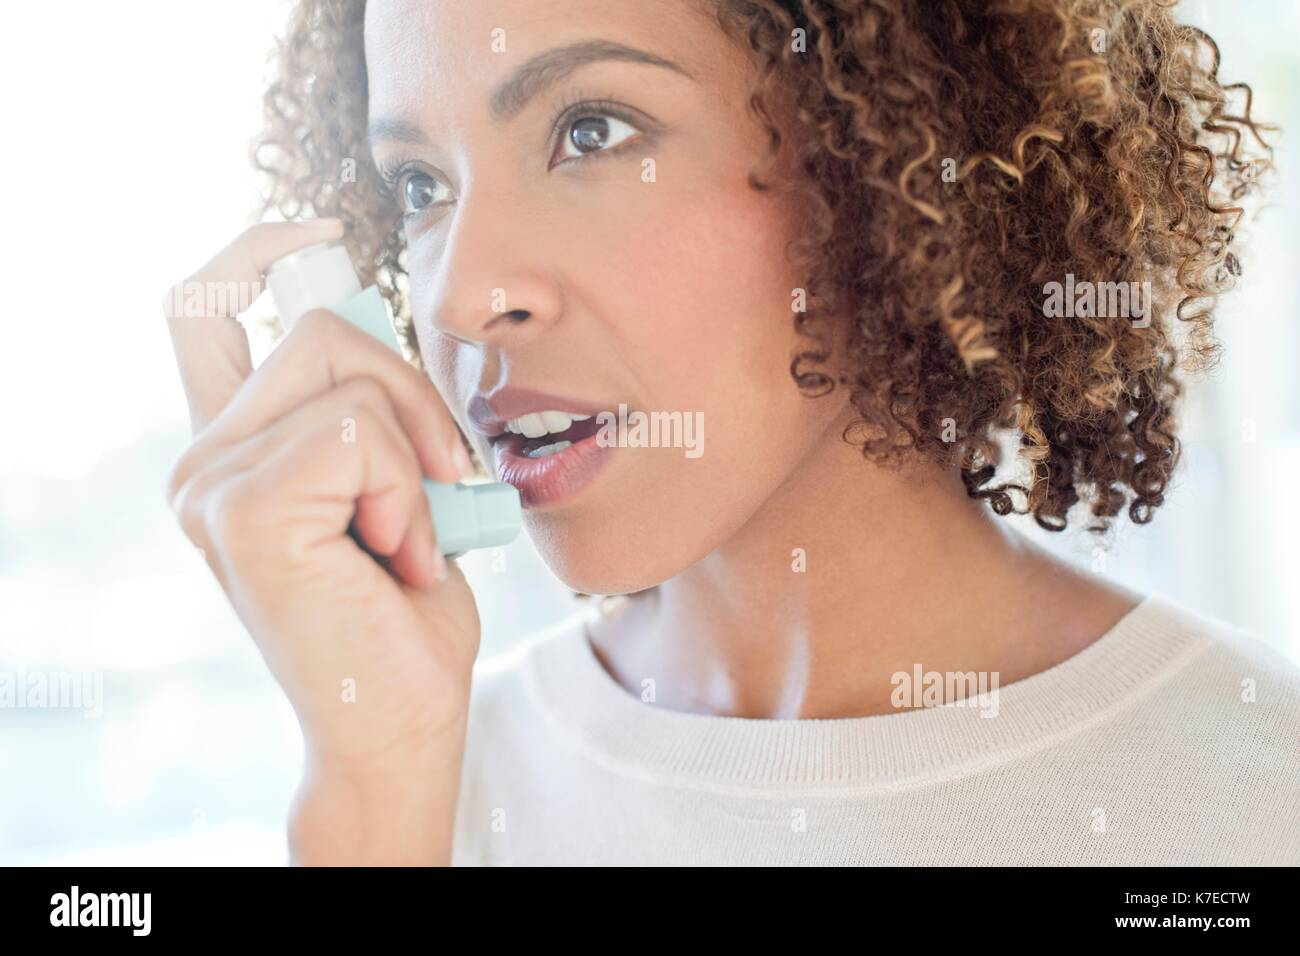 Mid adult woman using inhaler. - Stock Image